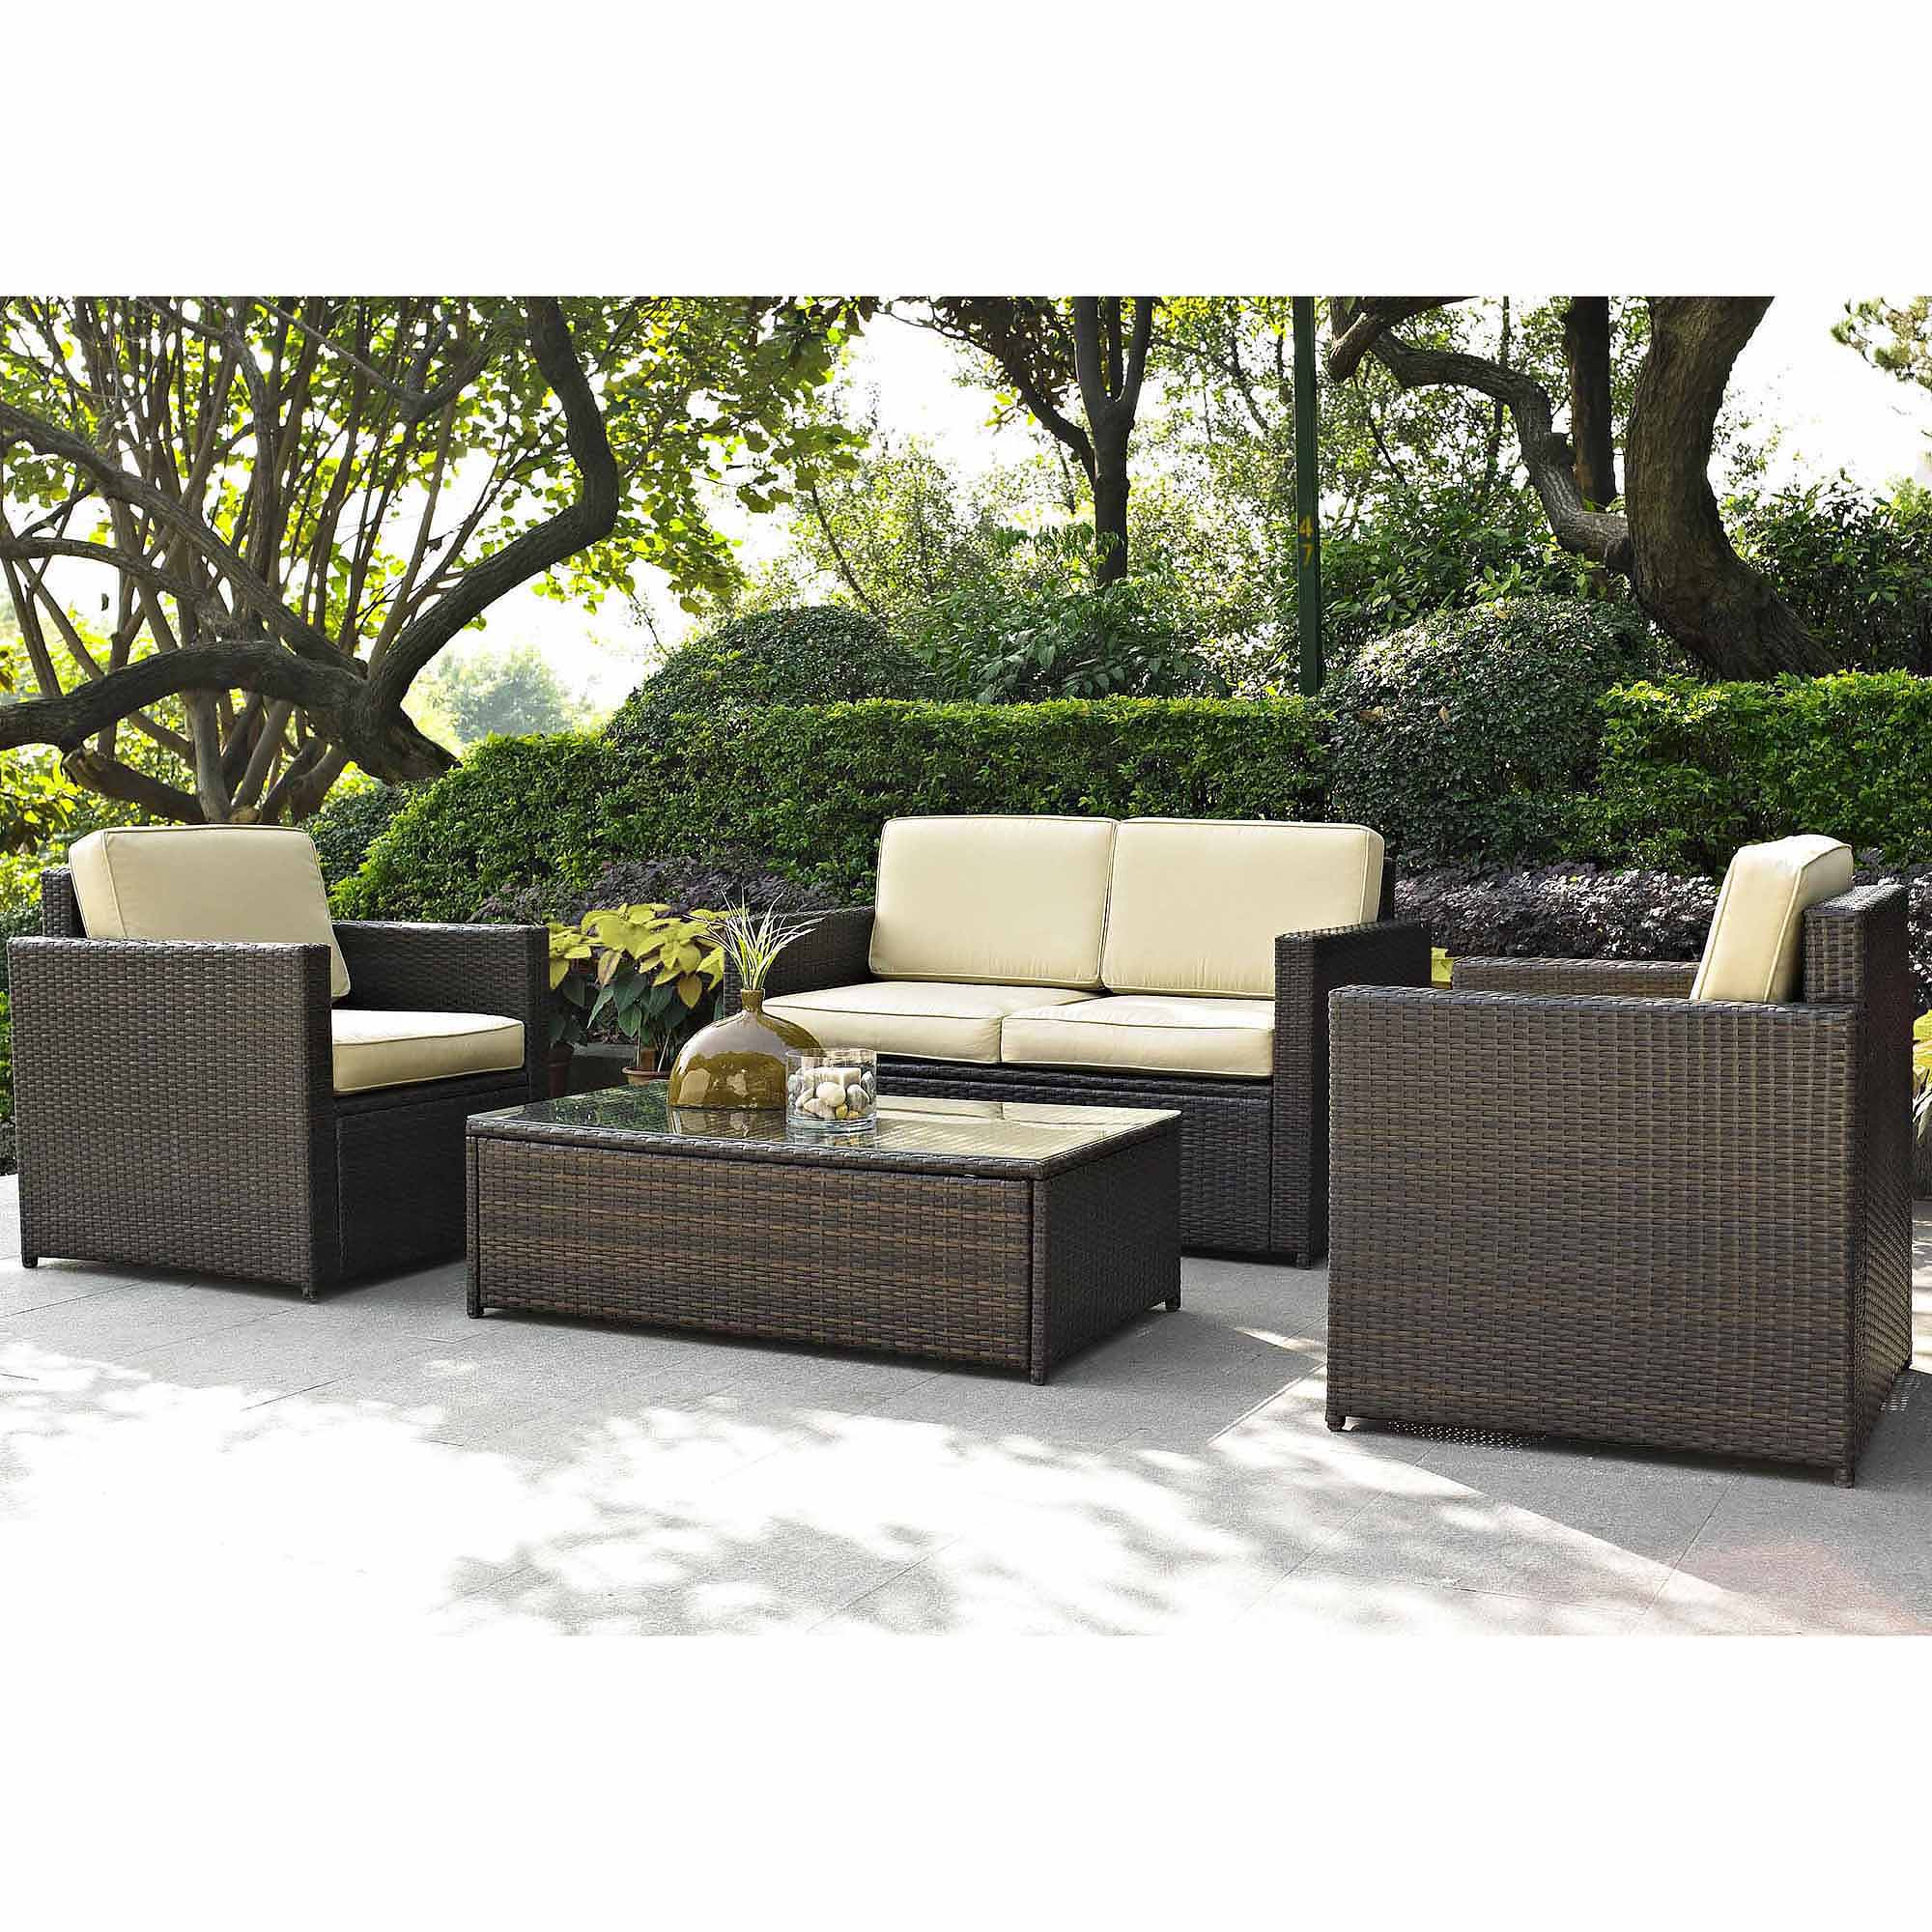 outdoor wicker furniture best choice products outdoor garden patio 4pc cushioned seat black wicker  sofa FATEUKY